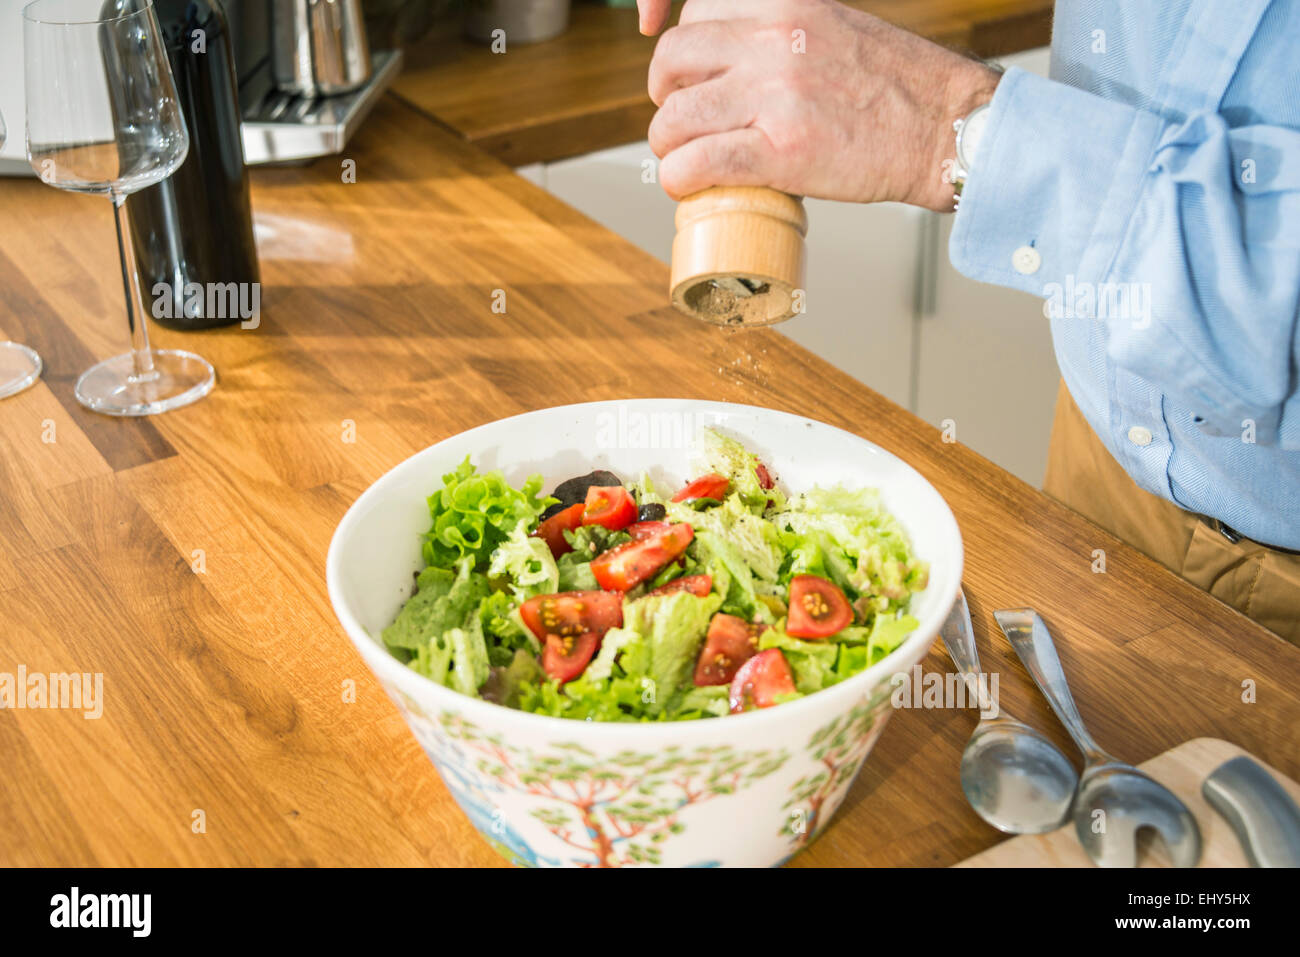 Personne salade assaisonnement Photo Stock